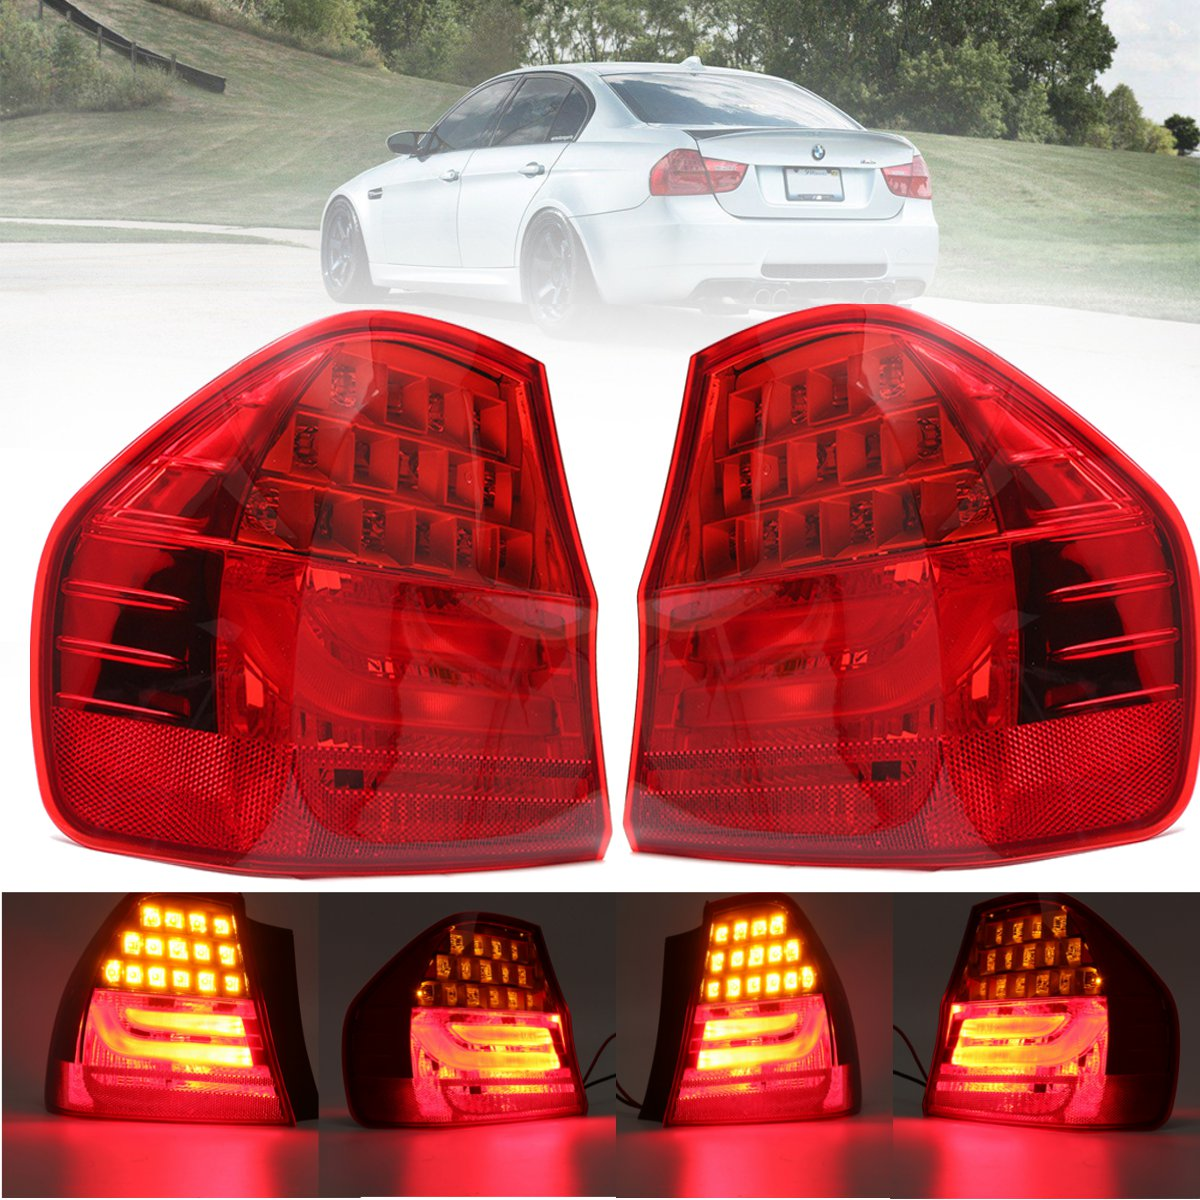 1X Car Rear Tail Lamp Light Led Light Left Right Side For BMW 3 SERIES E90